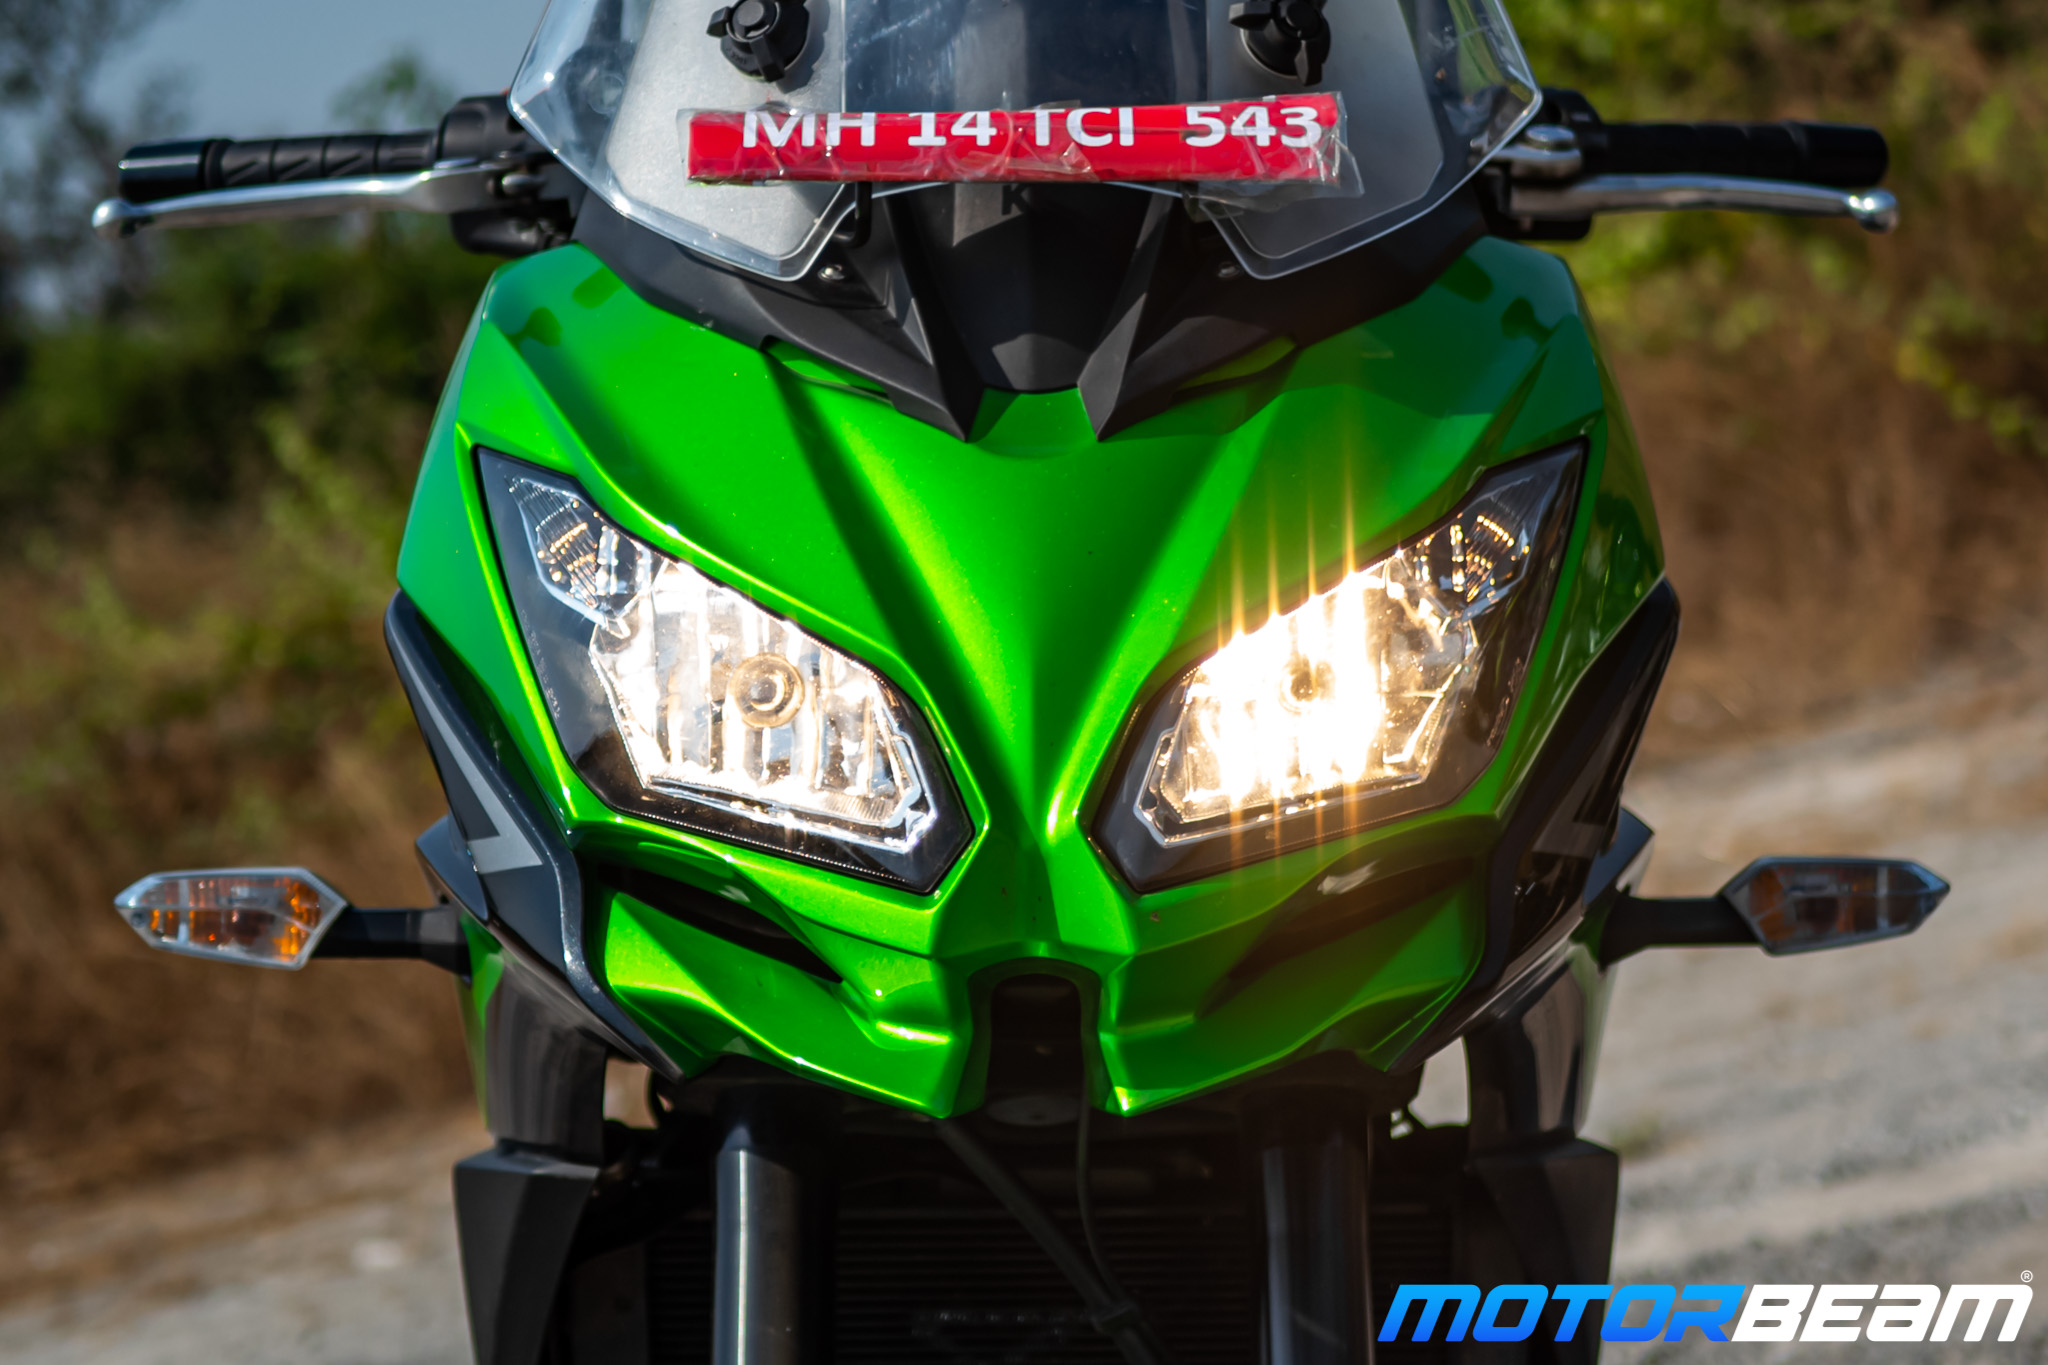 2021 Kawasaki Versys 650 Review 30